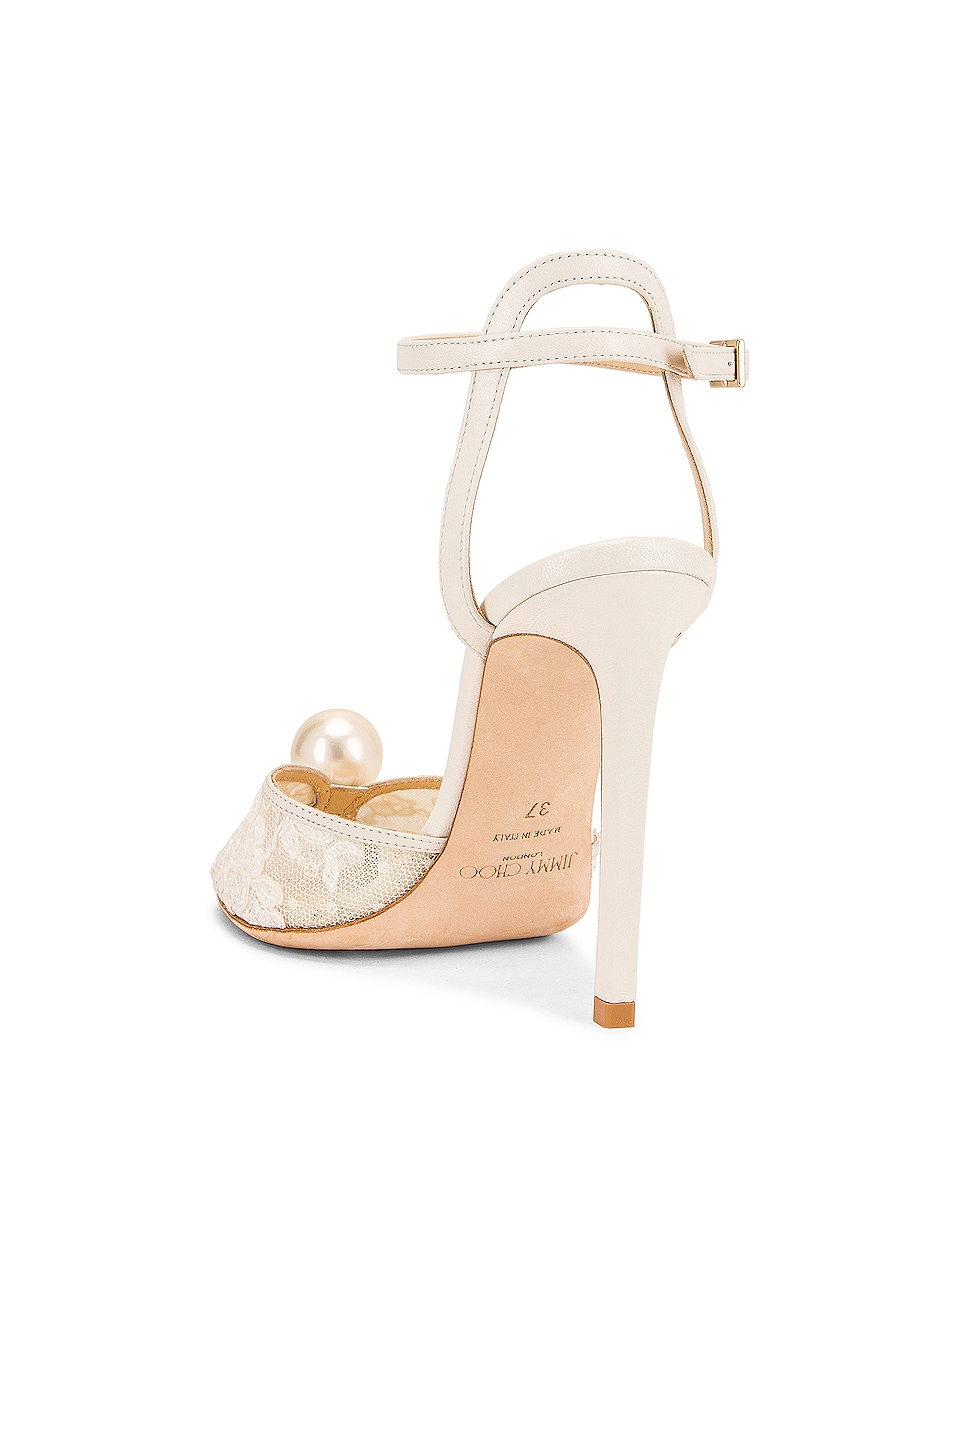 Image 3 of Jimmy Choo Sacora 100 Floral Lace with Pearl Sandal in White